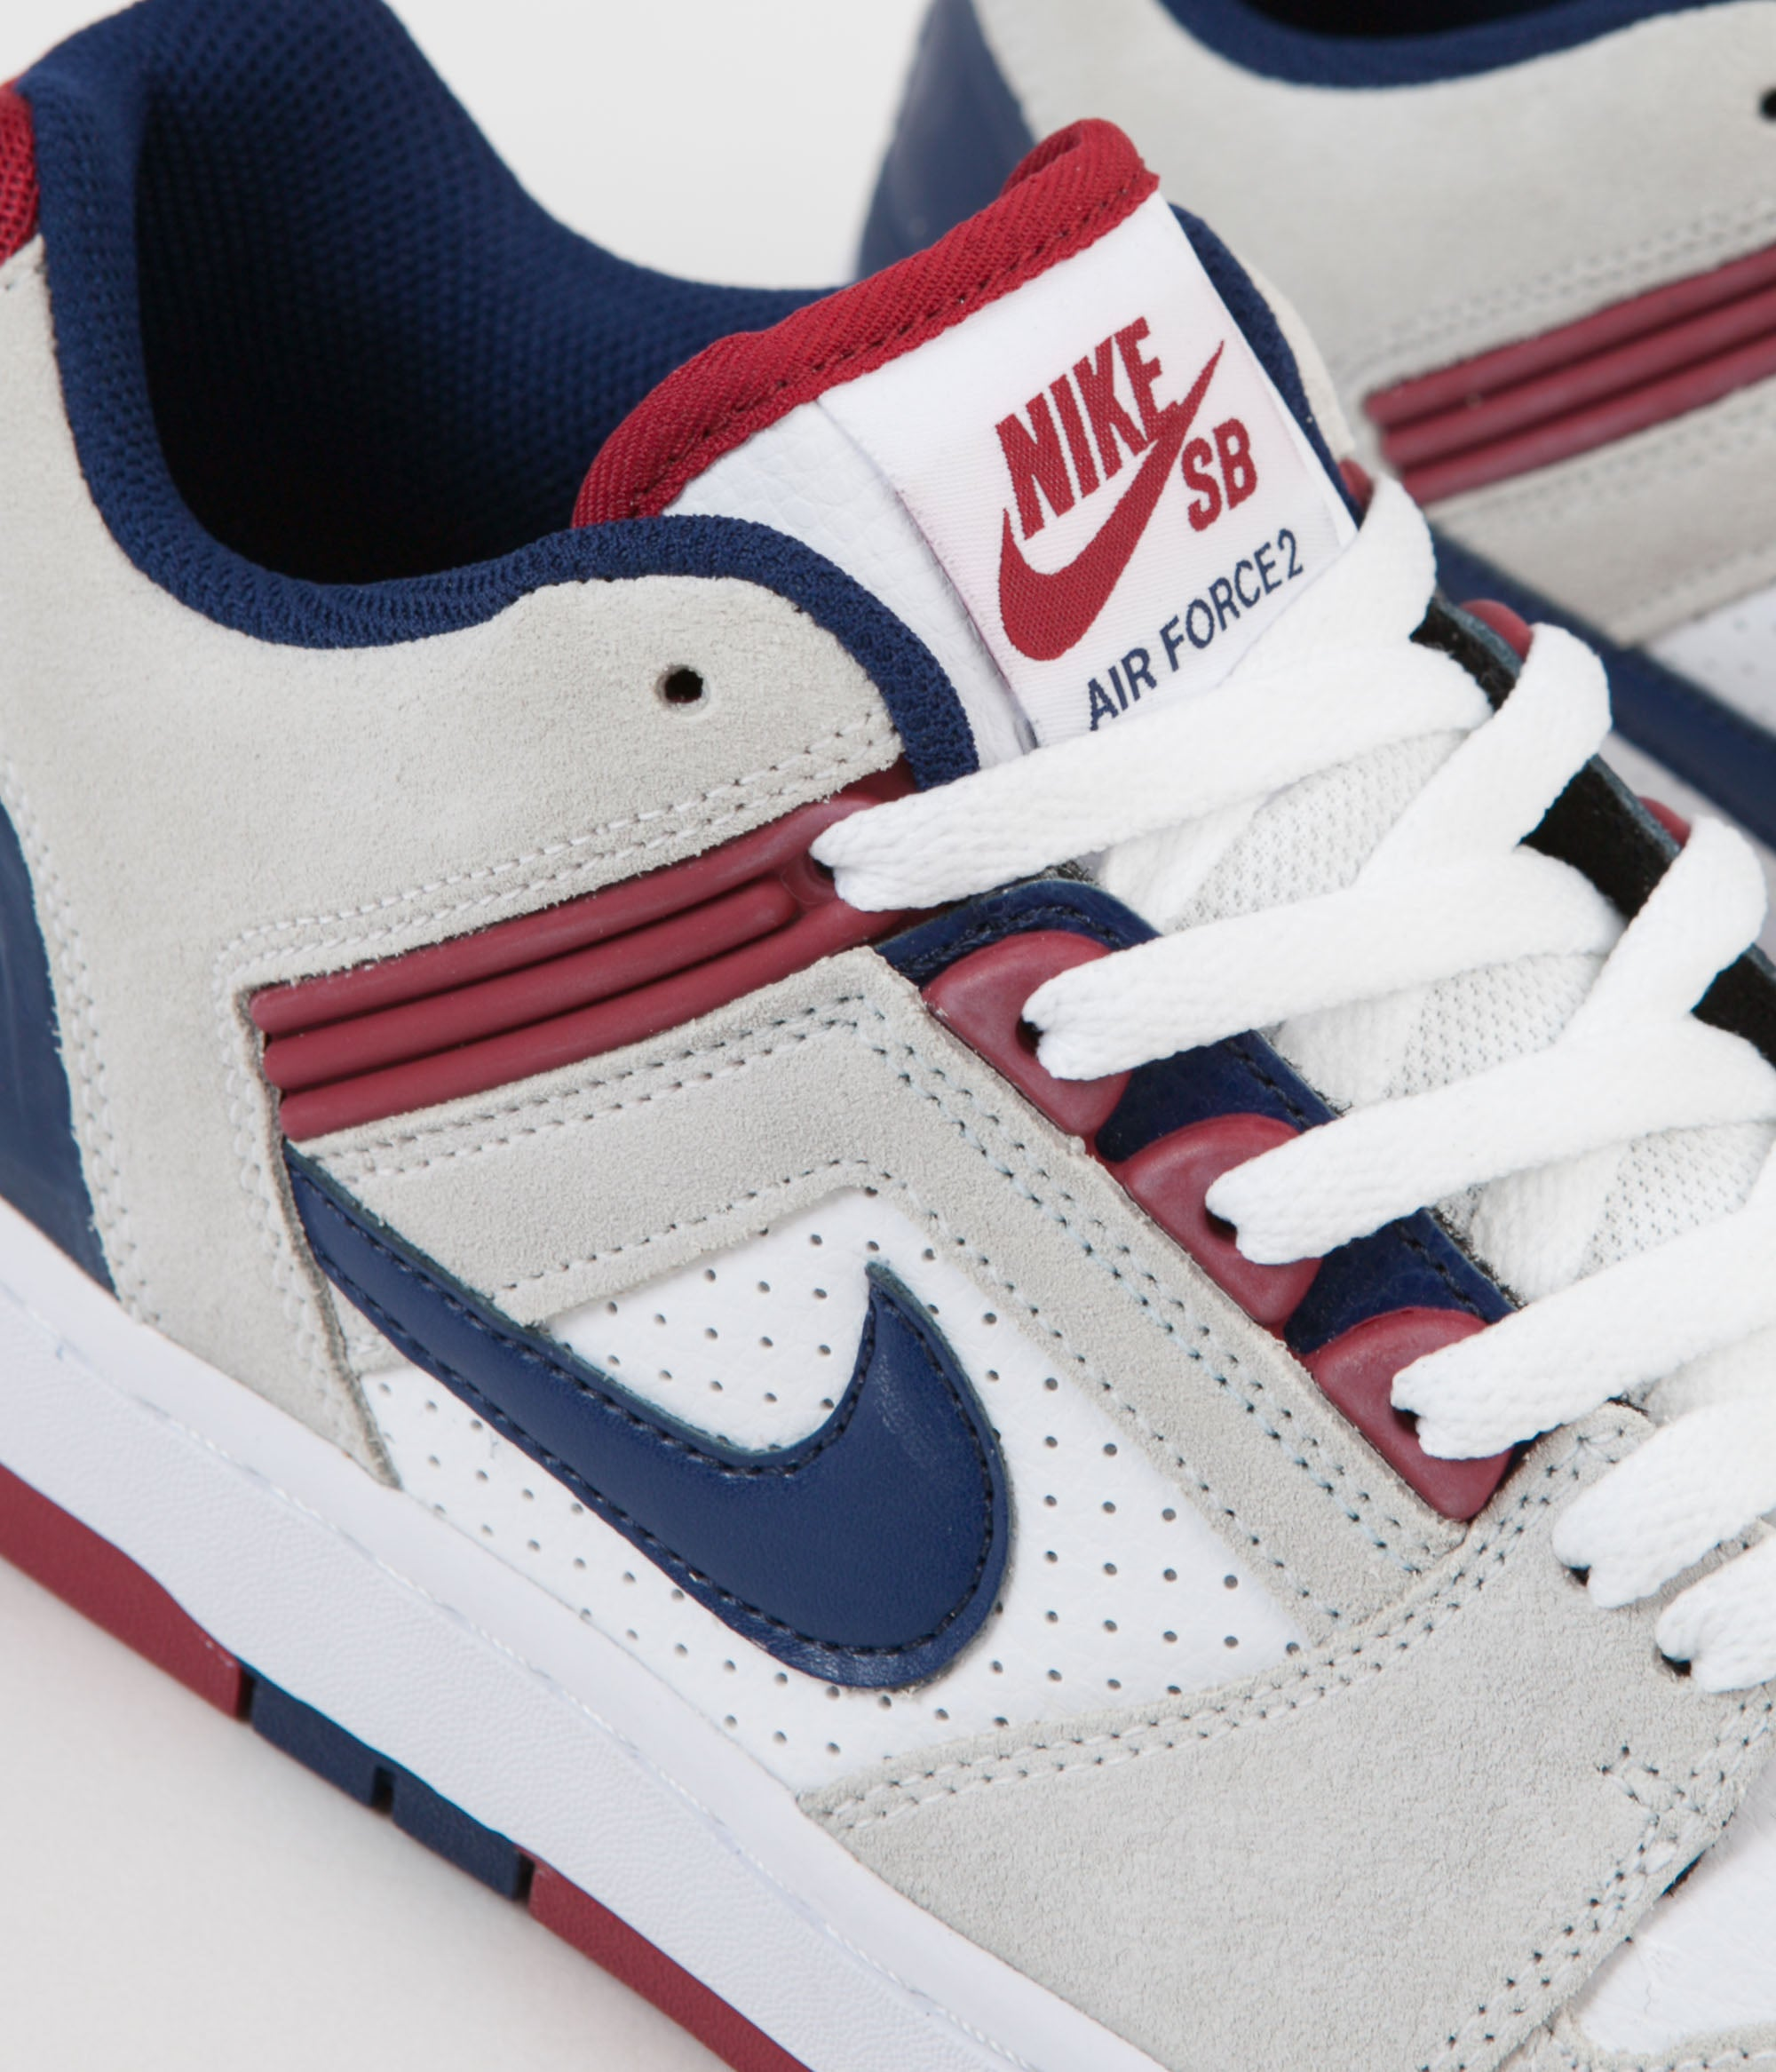 huge discount b9485 305c3 ... Nike SB Air Force II Low Shoes - White   Blue Void - Red Crush ...